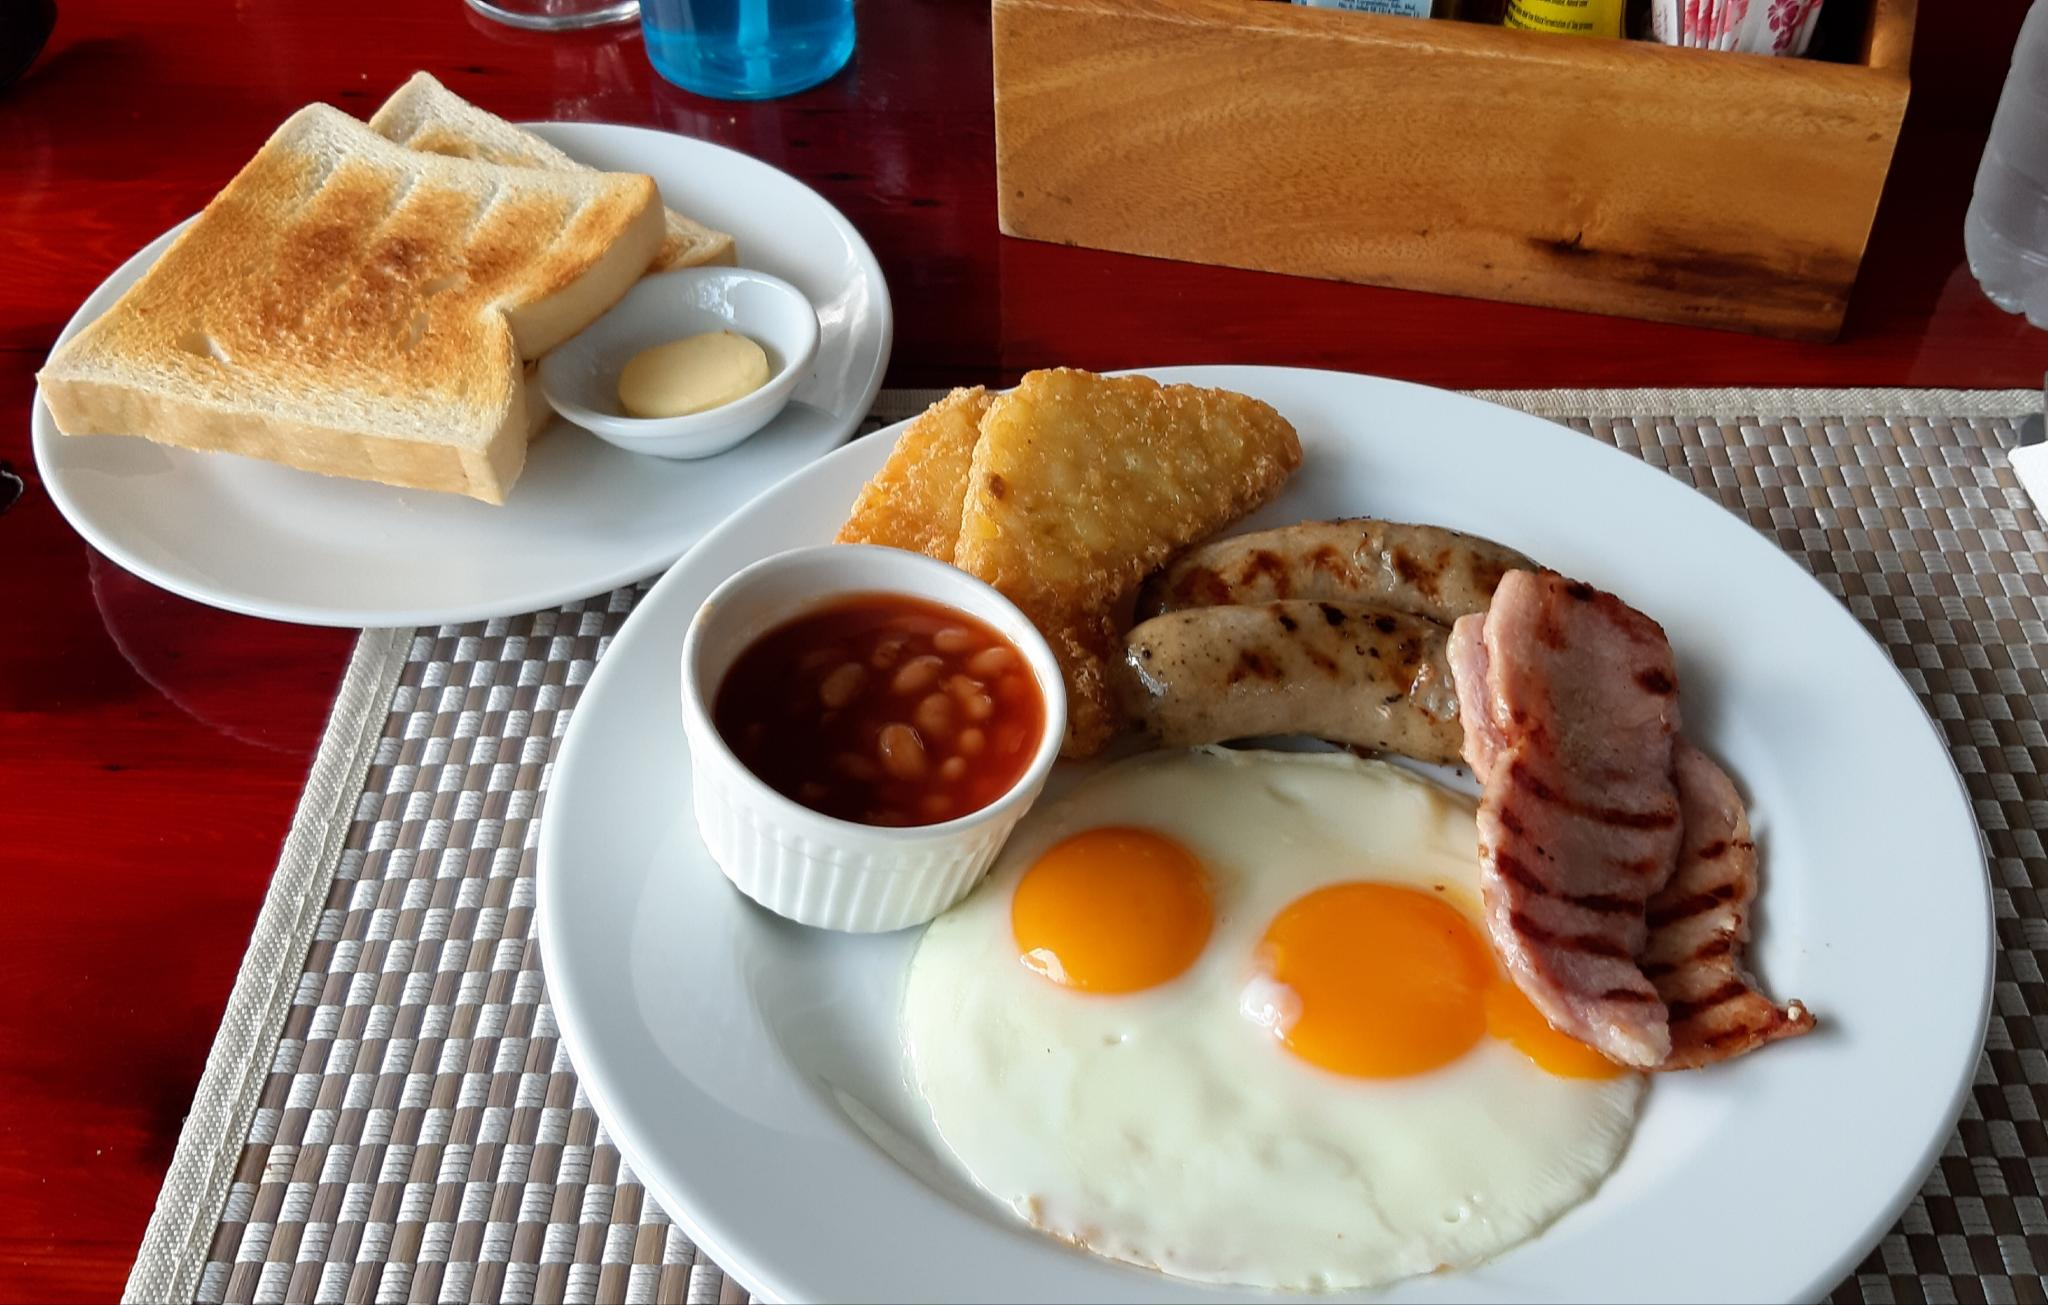 The Best Breakfast in the World Step by Step.: the Full English-20210125_120804-jpg